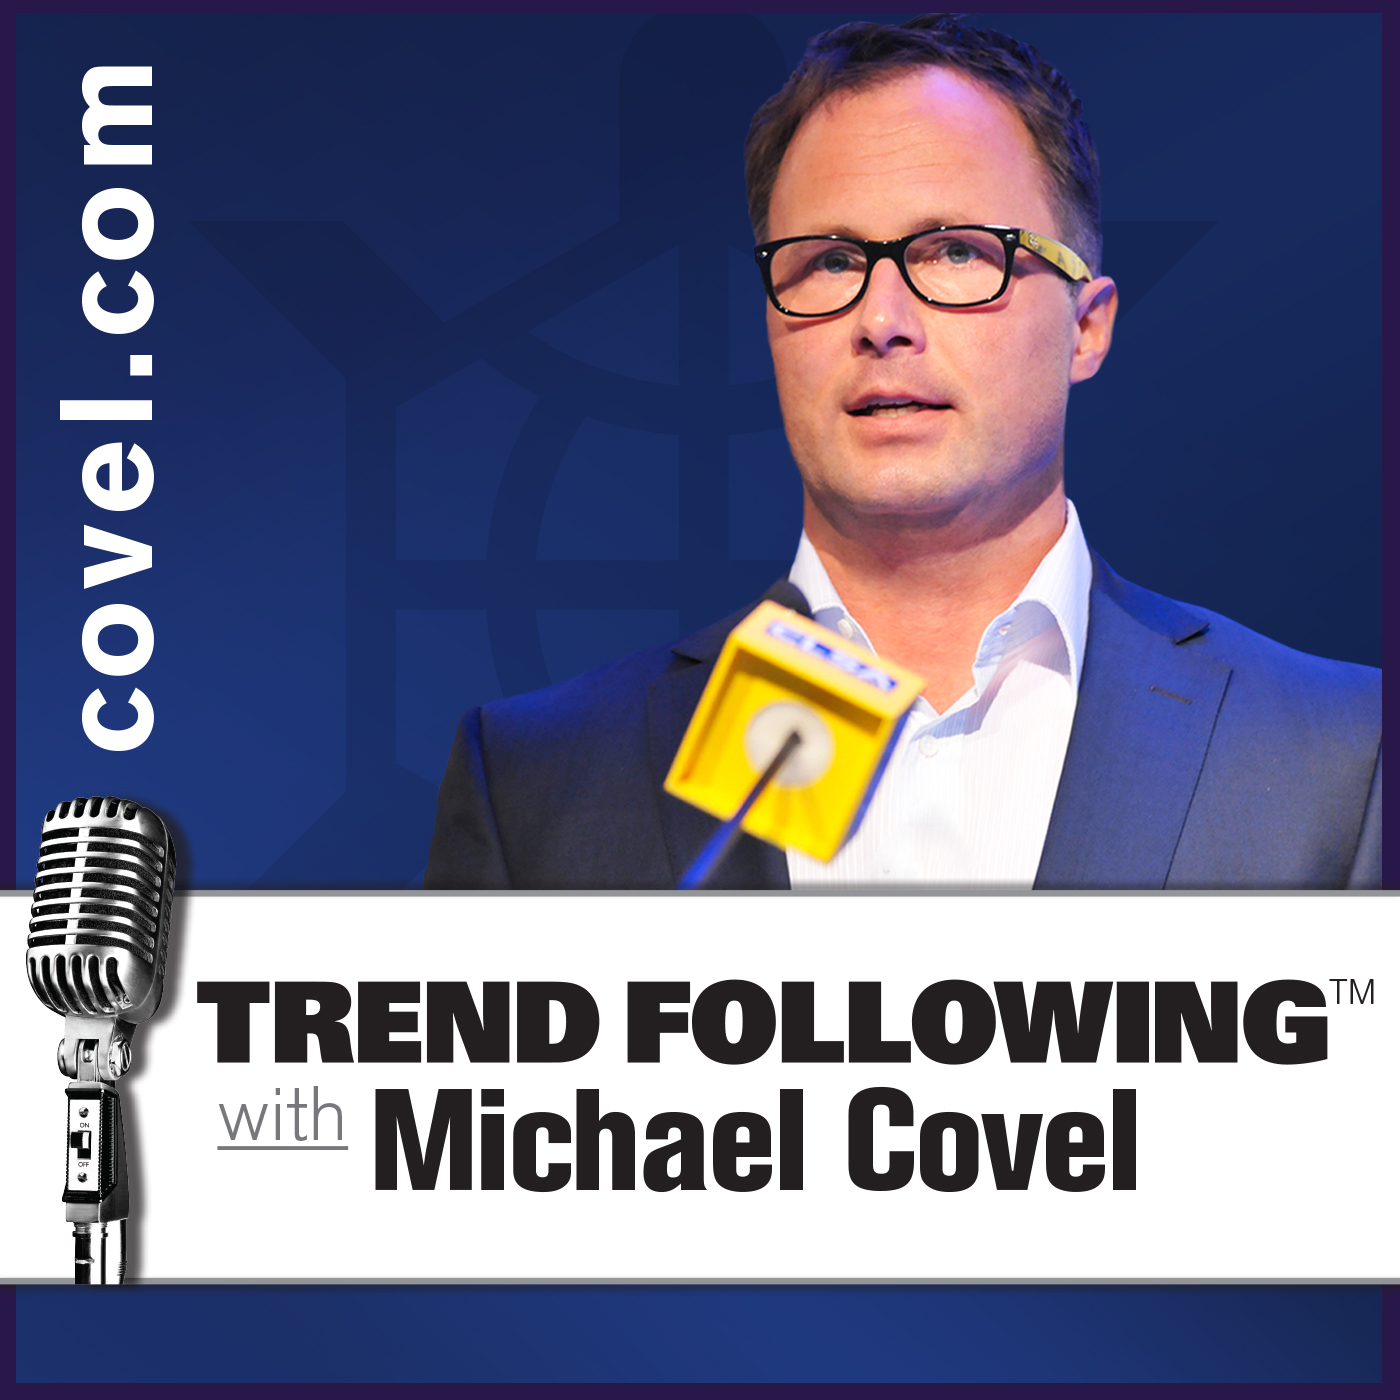 Ep. 515: Epic Trend Following Episode with Michael Covel